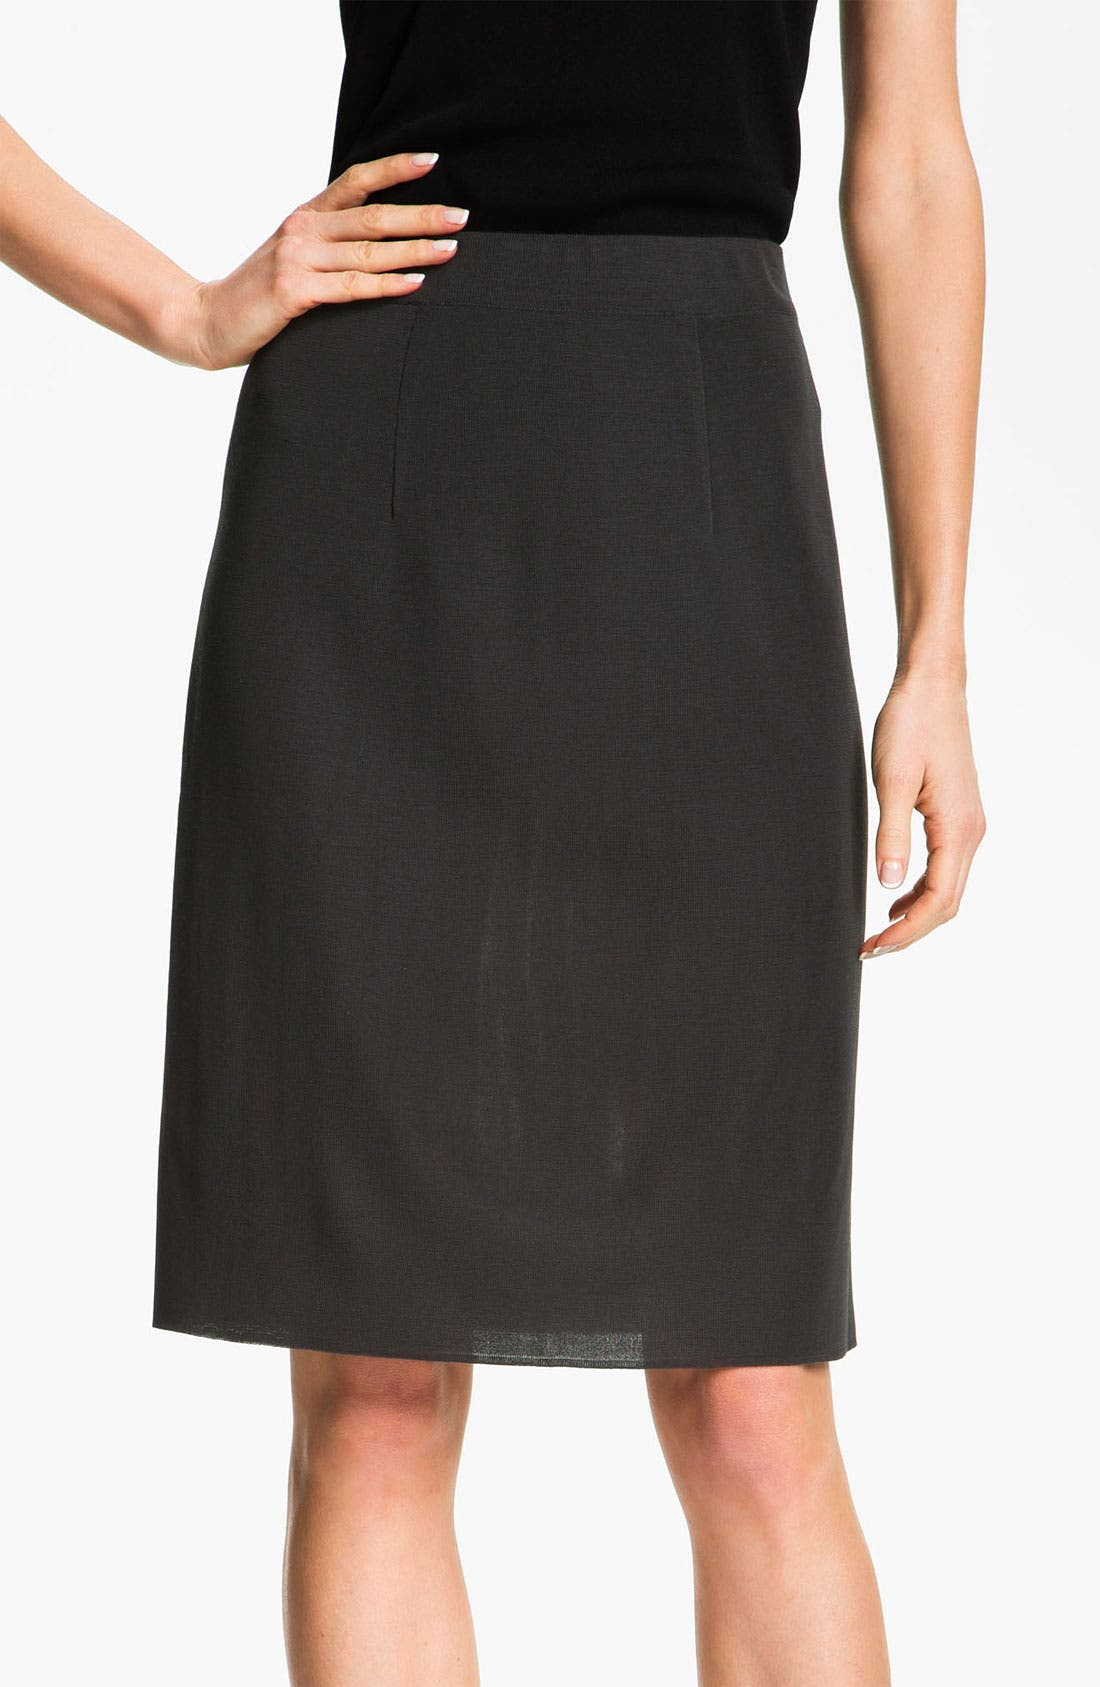 Alternate Image 1 Selected - Misook Pull-On Skirt (Petite) (Online Only)